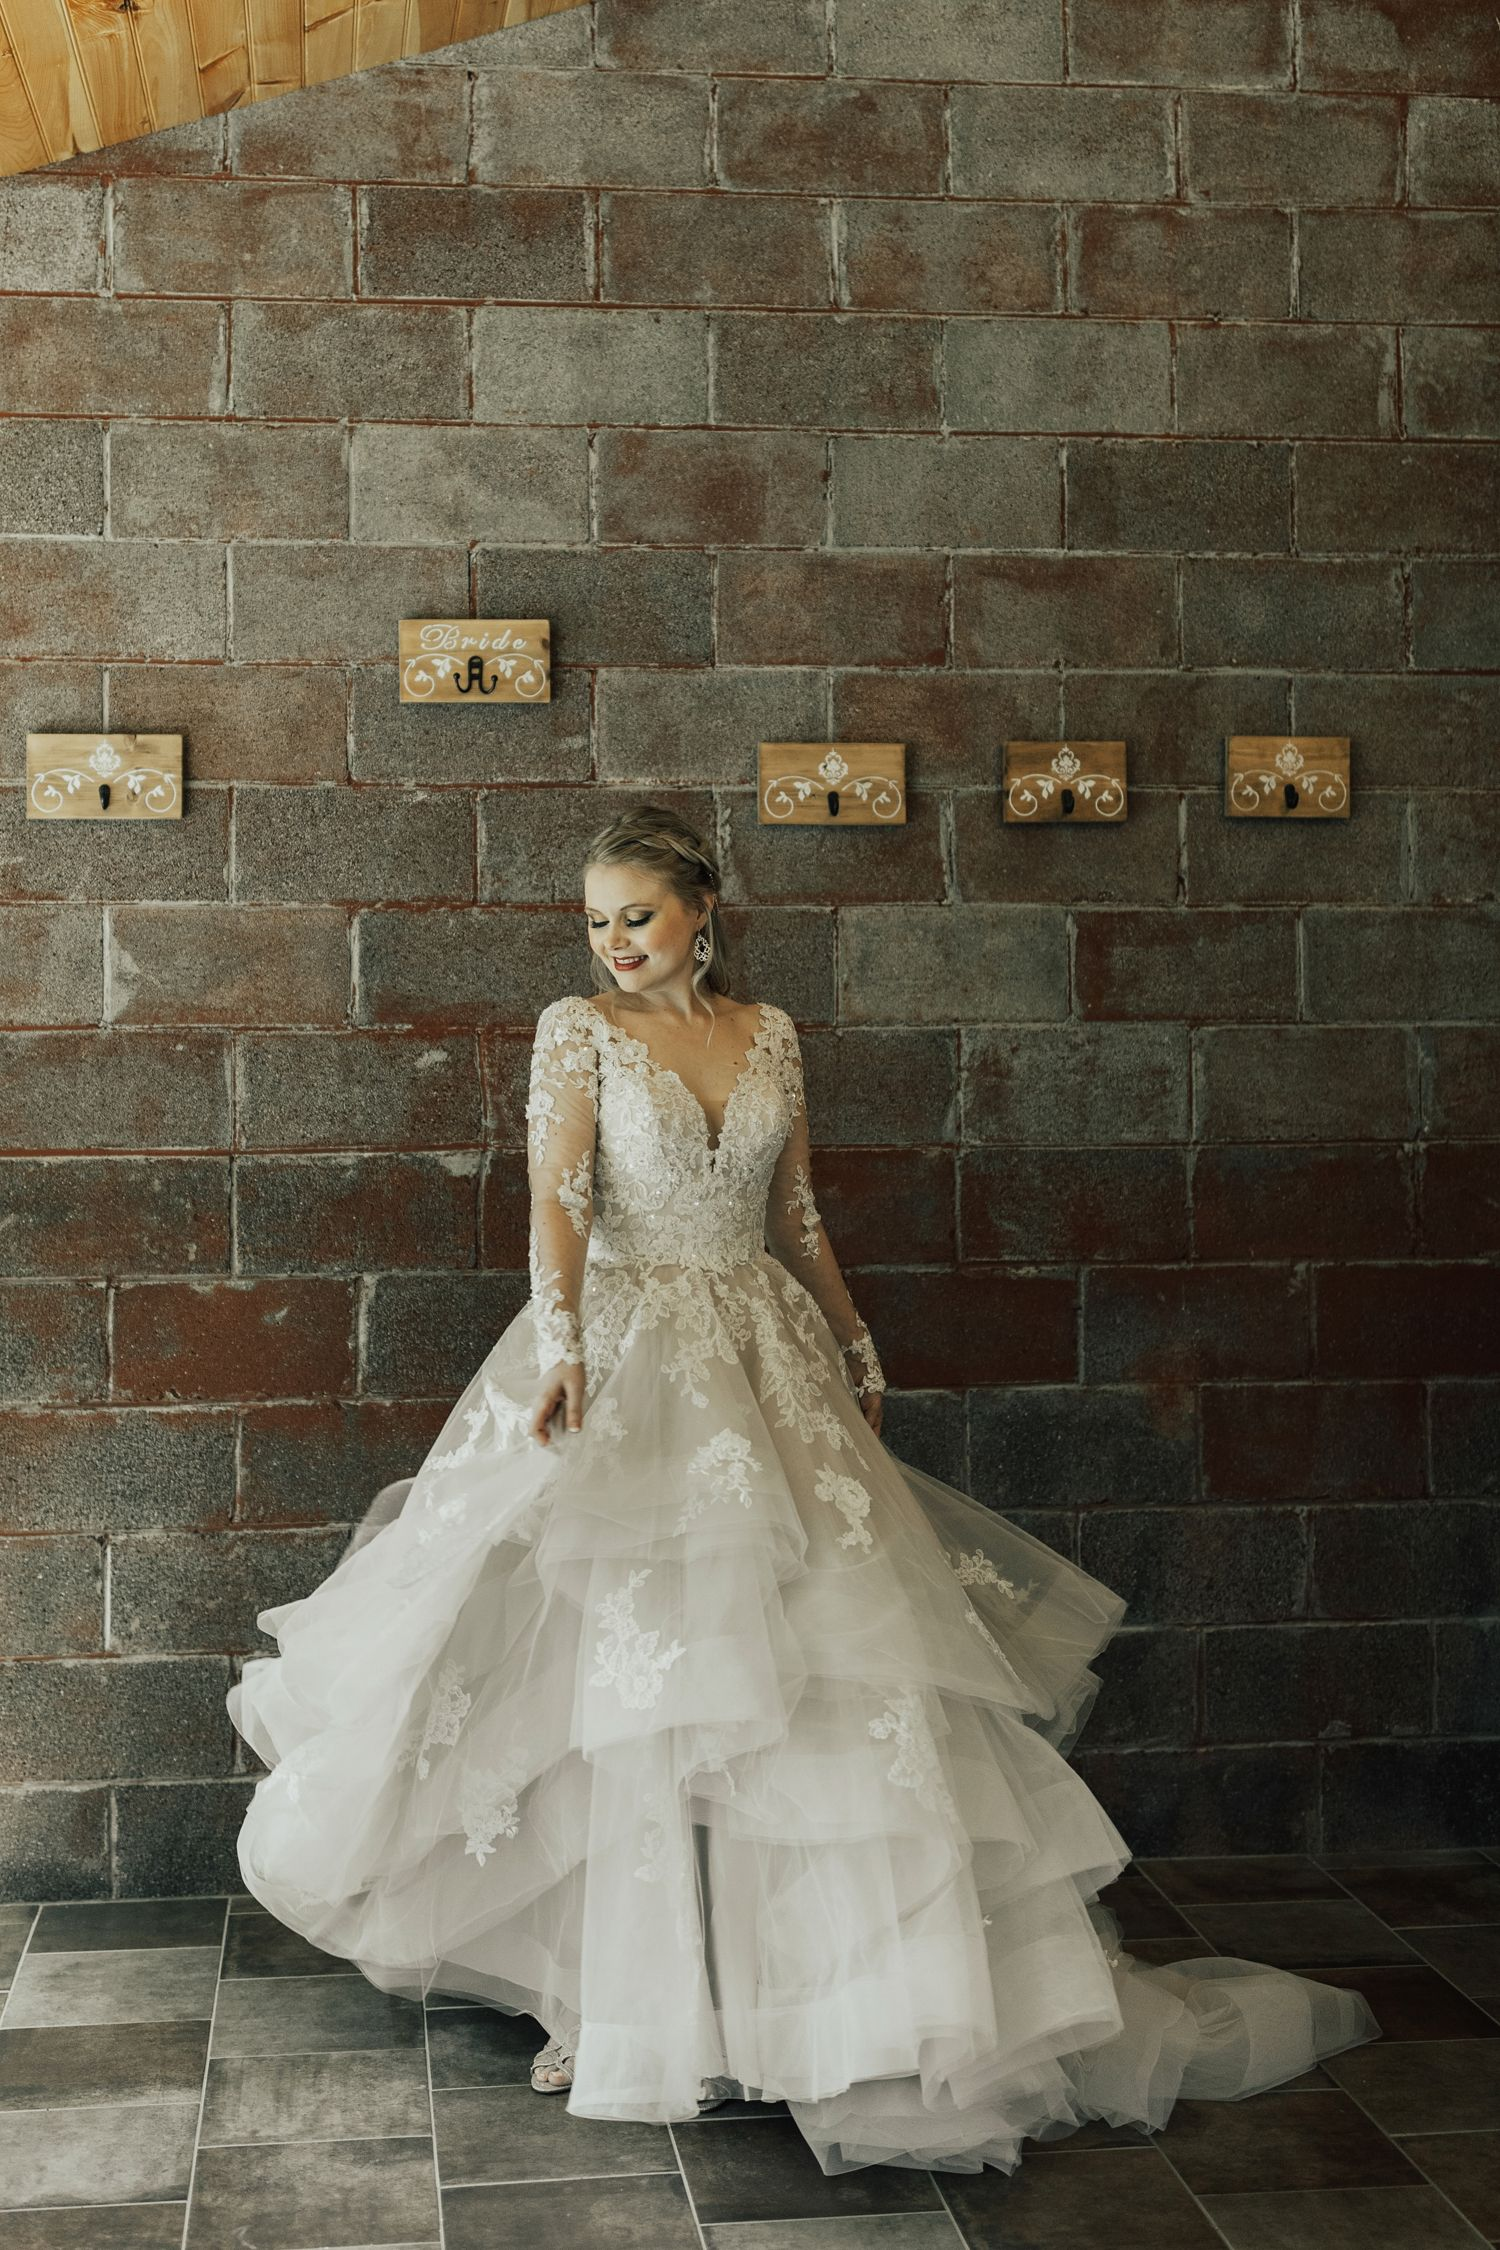 Alyssa Dylan Knoxville Tennessee Fantasy Themed Wedding